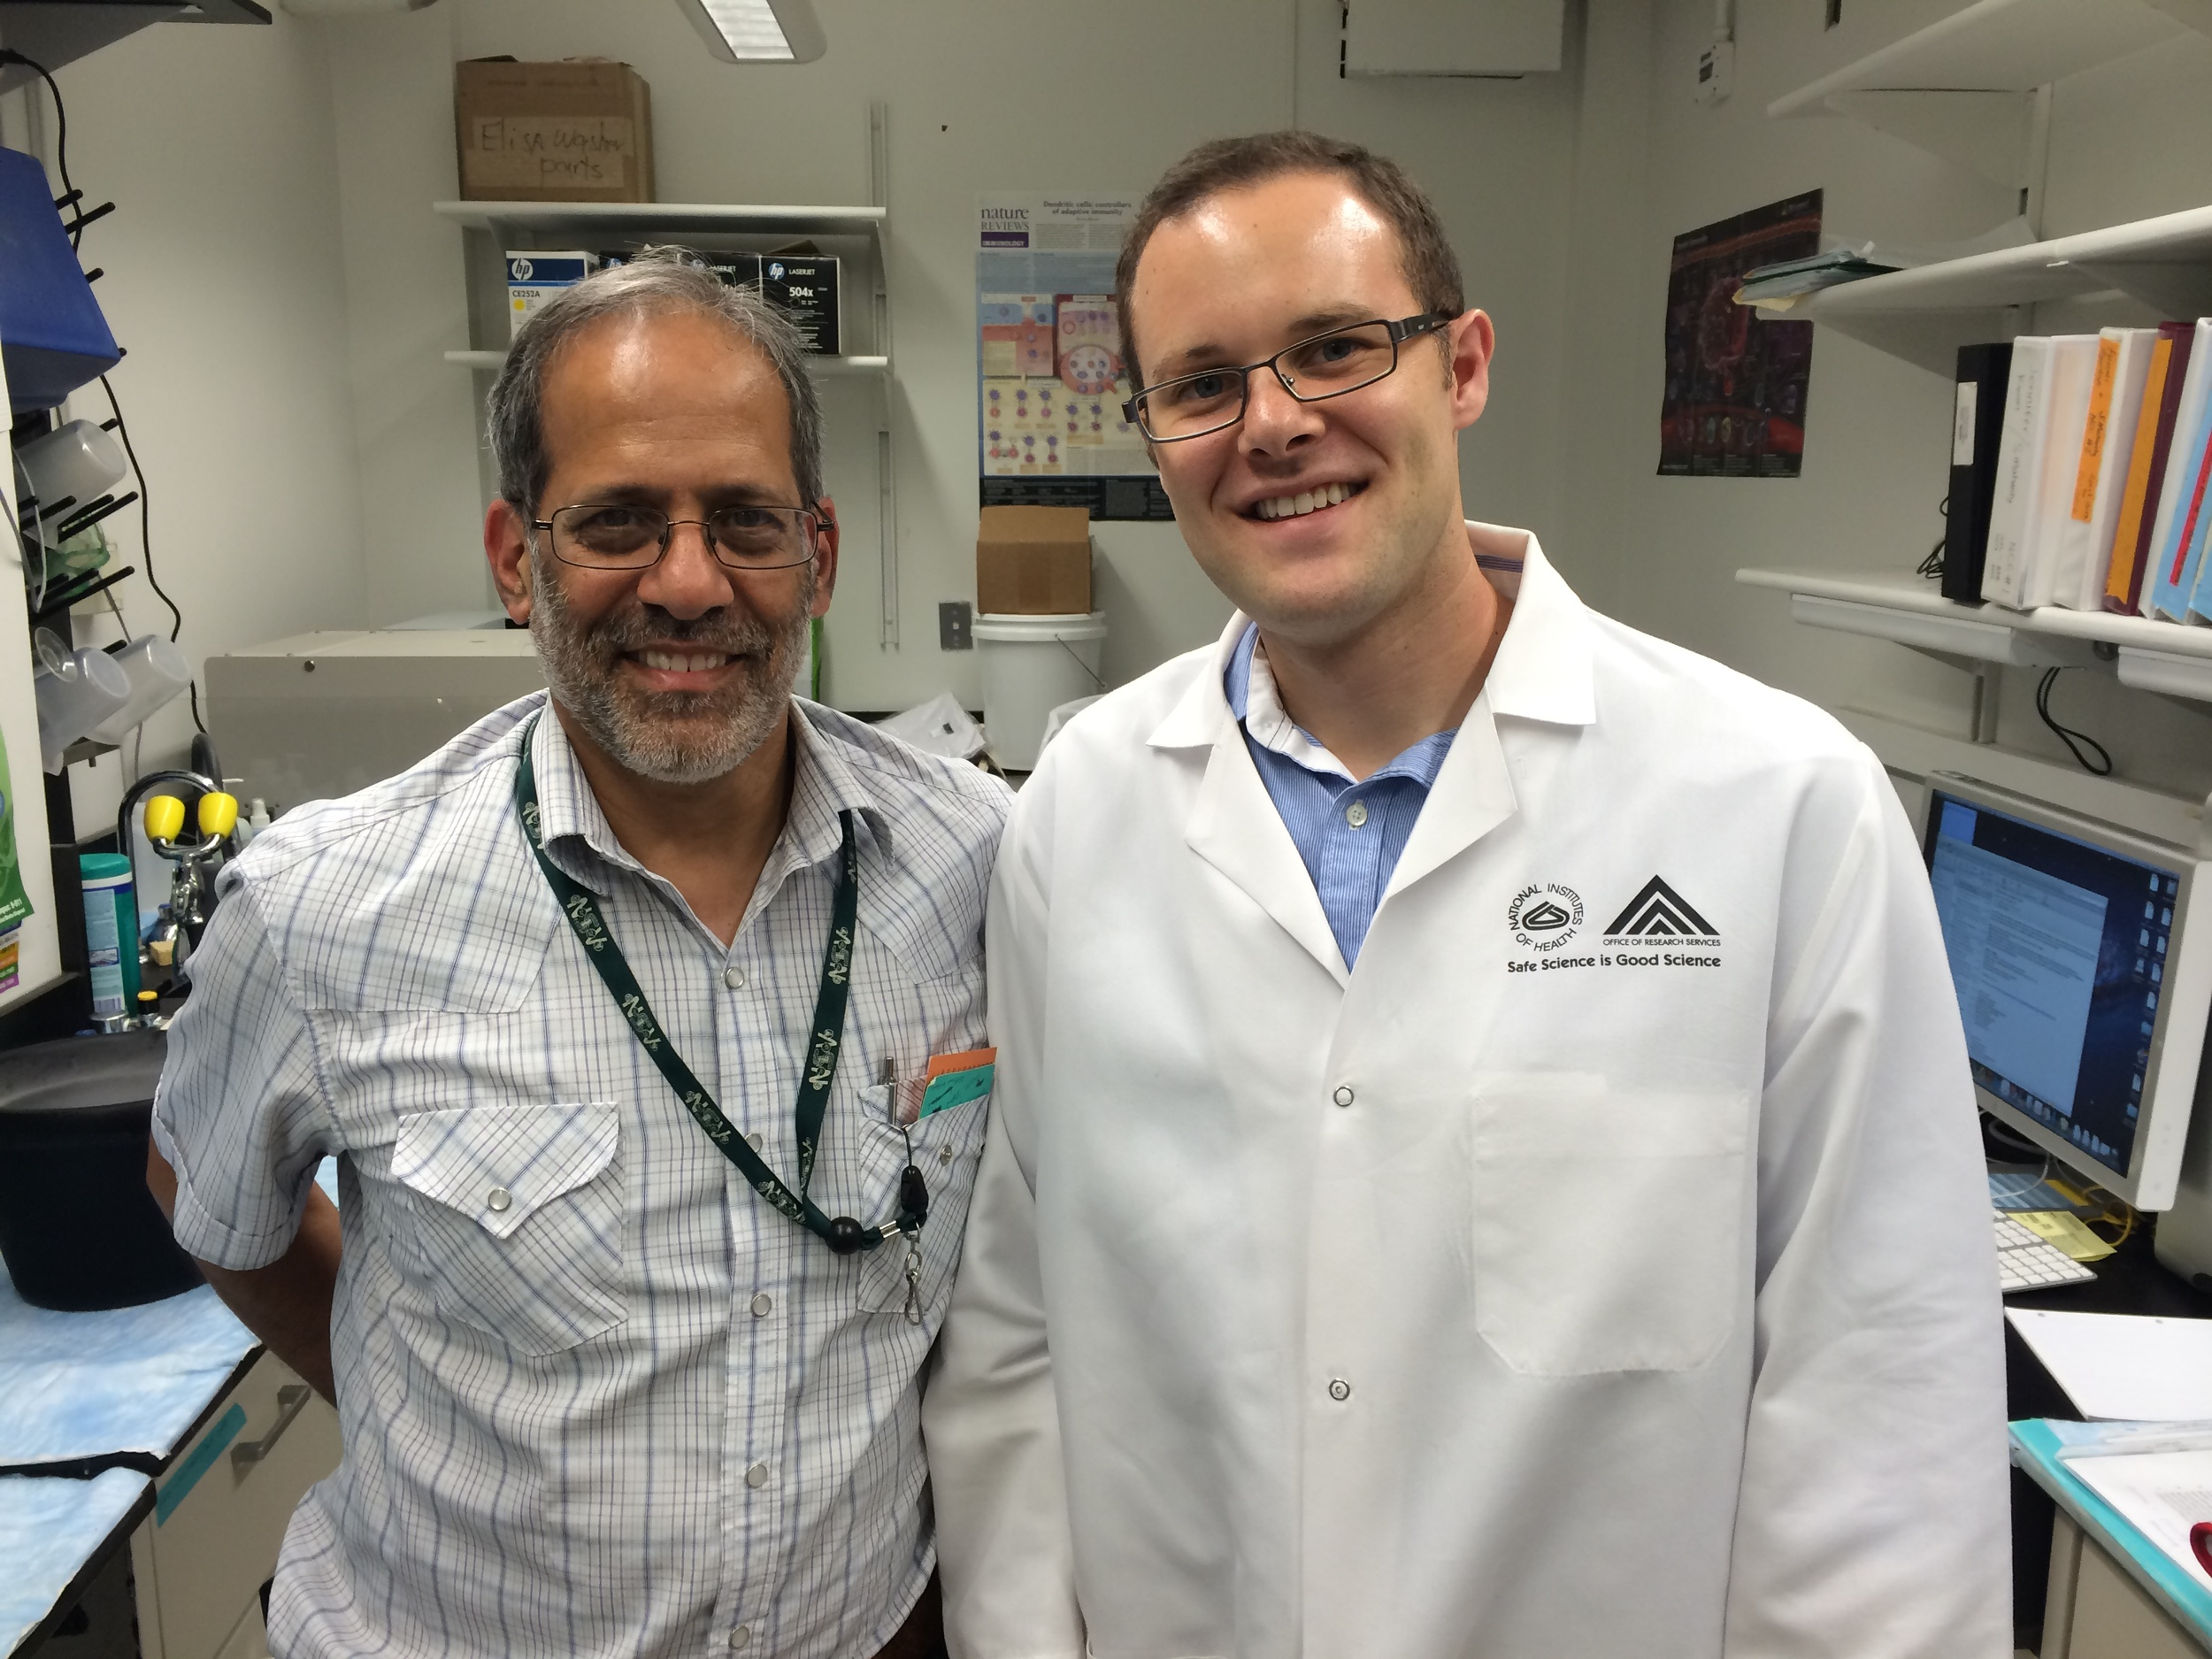 Graduate student Stephen Johnson (right) with our collaborator  Siddhartha Mahanty (NIH) at the National Institutes of Health, Bethesda, MD